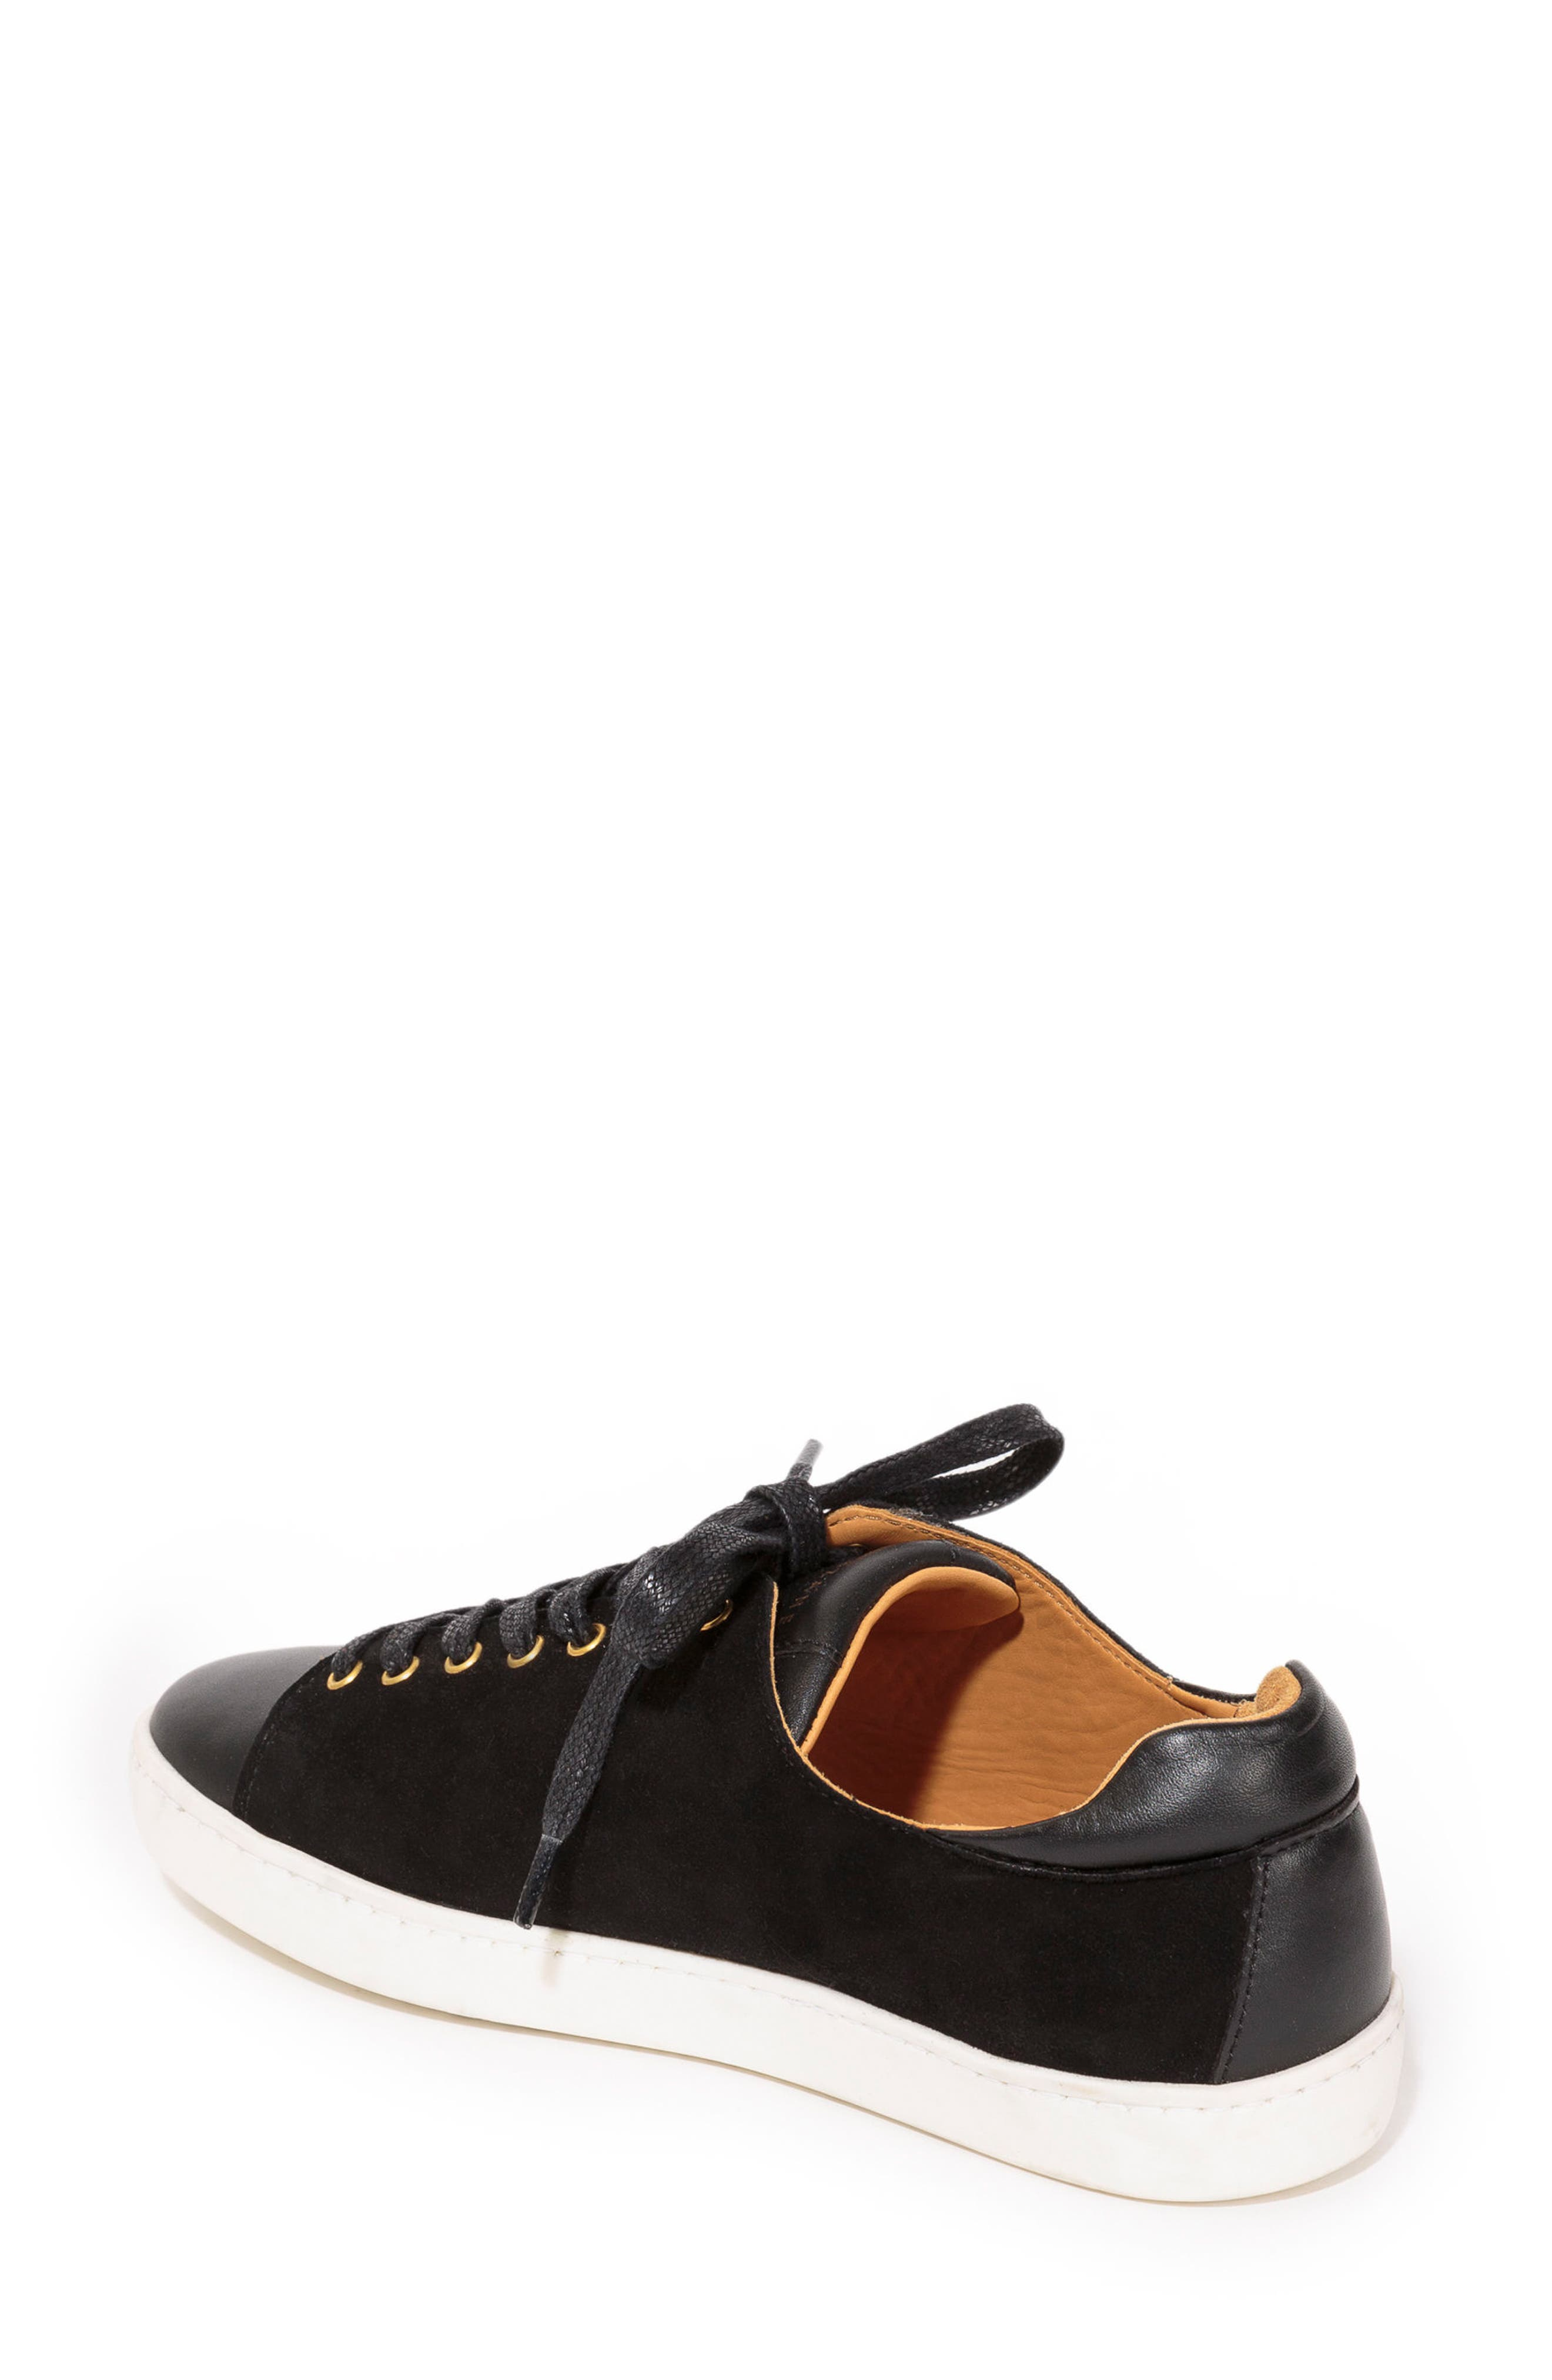 Jack Sneaker,                             Alternate thumbnail 2, color,                             BLACK SUEDE